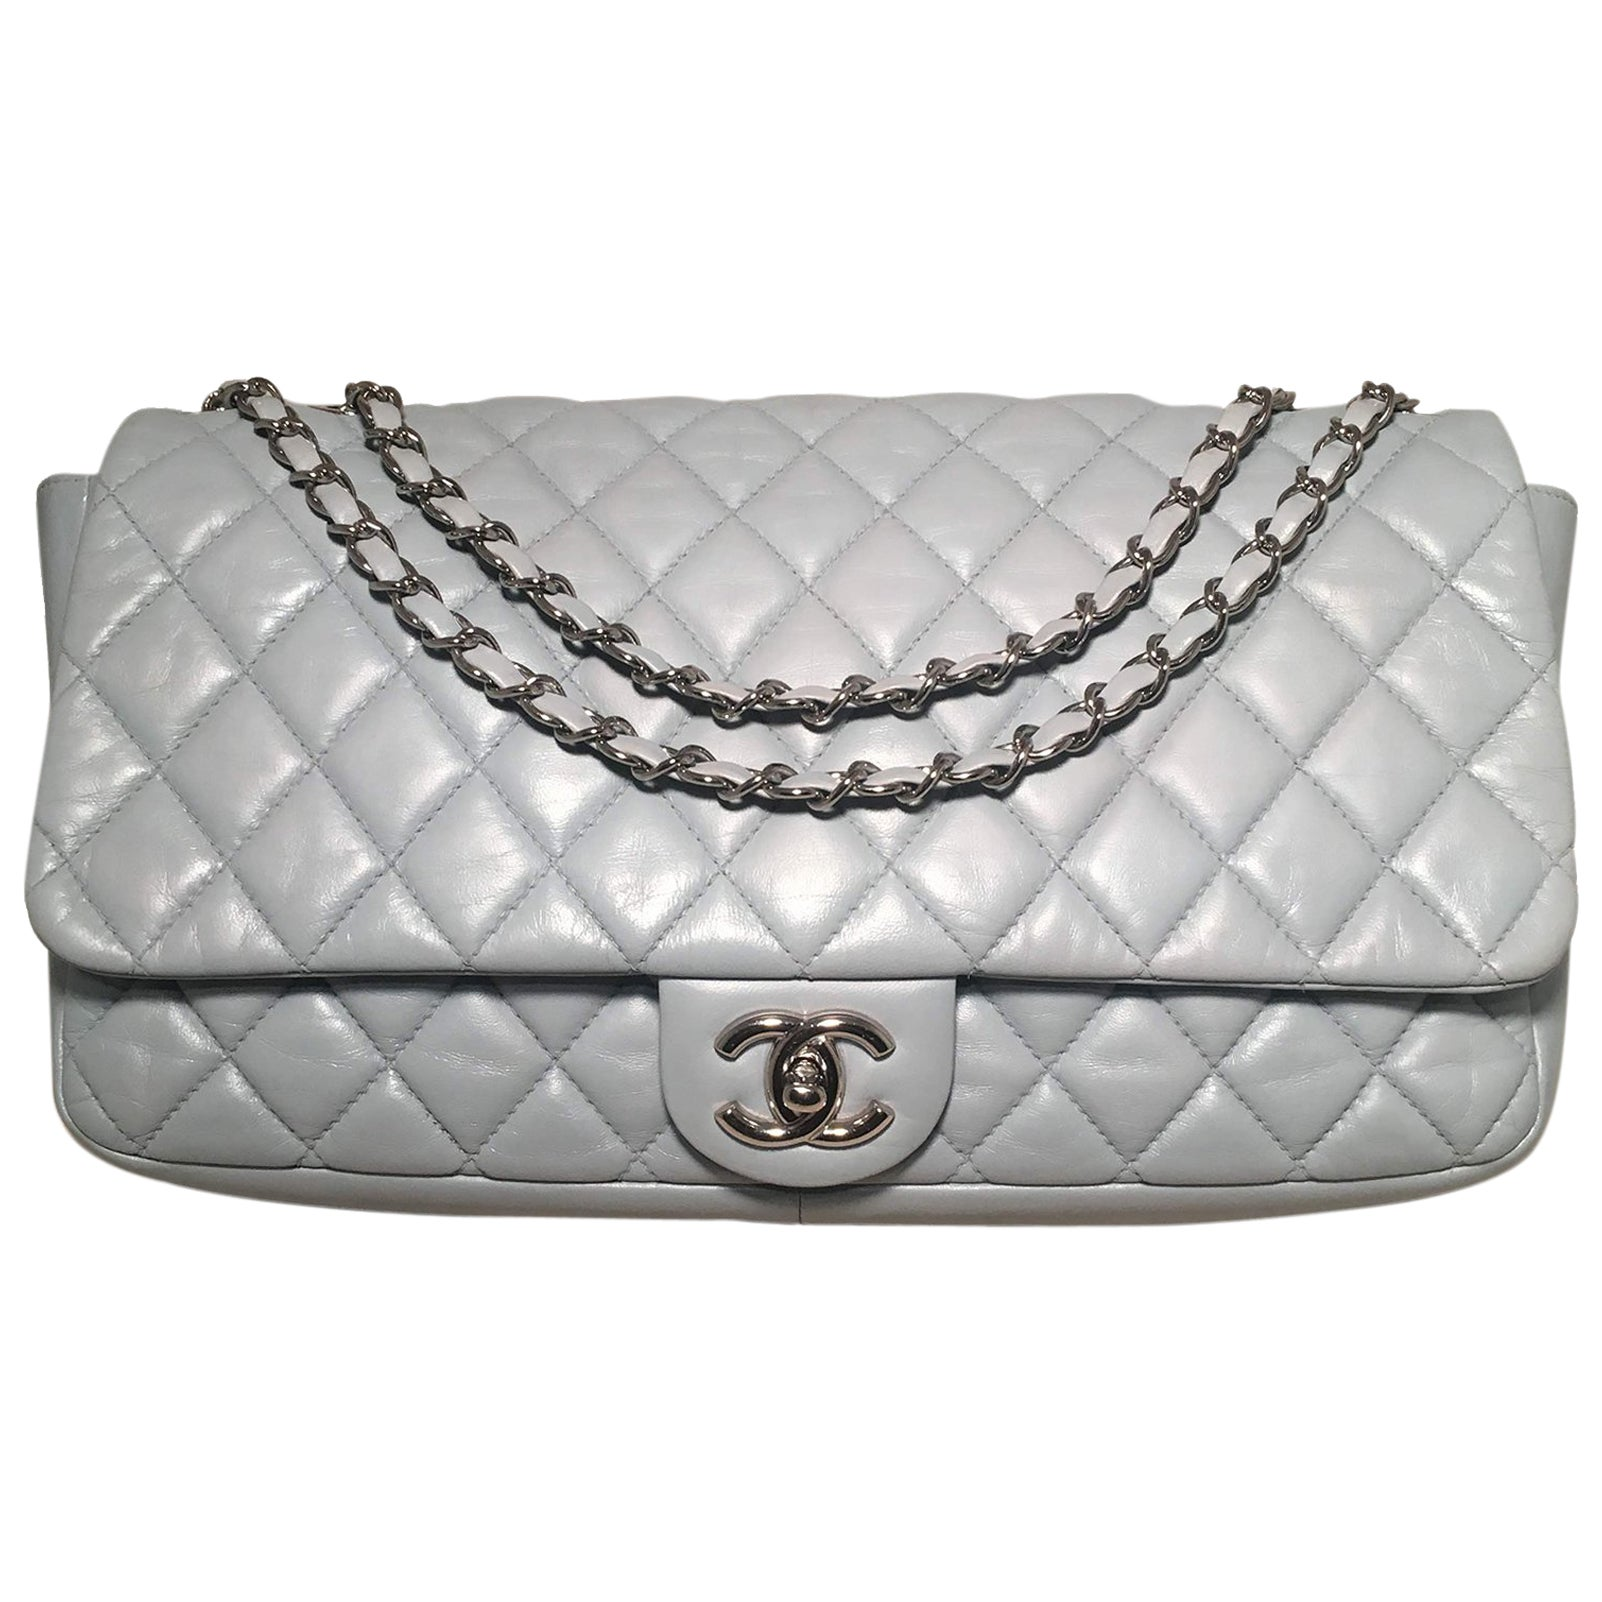 6f0a62553bcd4f Chanel Light Blue Quilted Leather XL Maxi Classic Flap Shoulder Bag For  Sale at 1stdibs